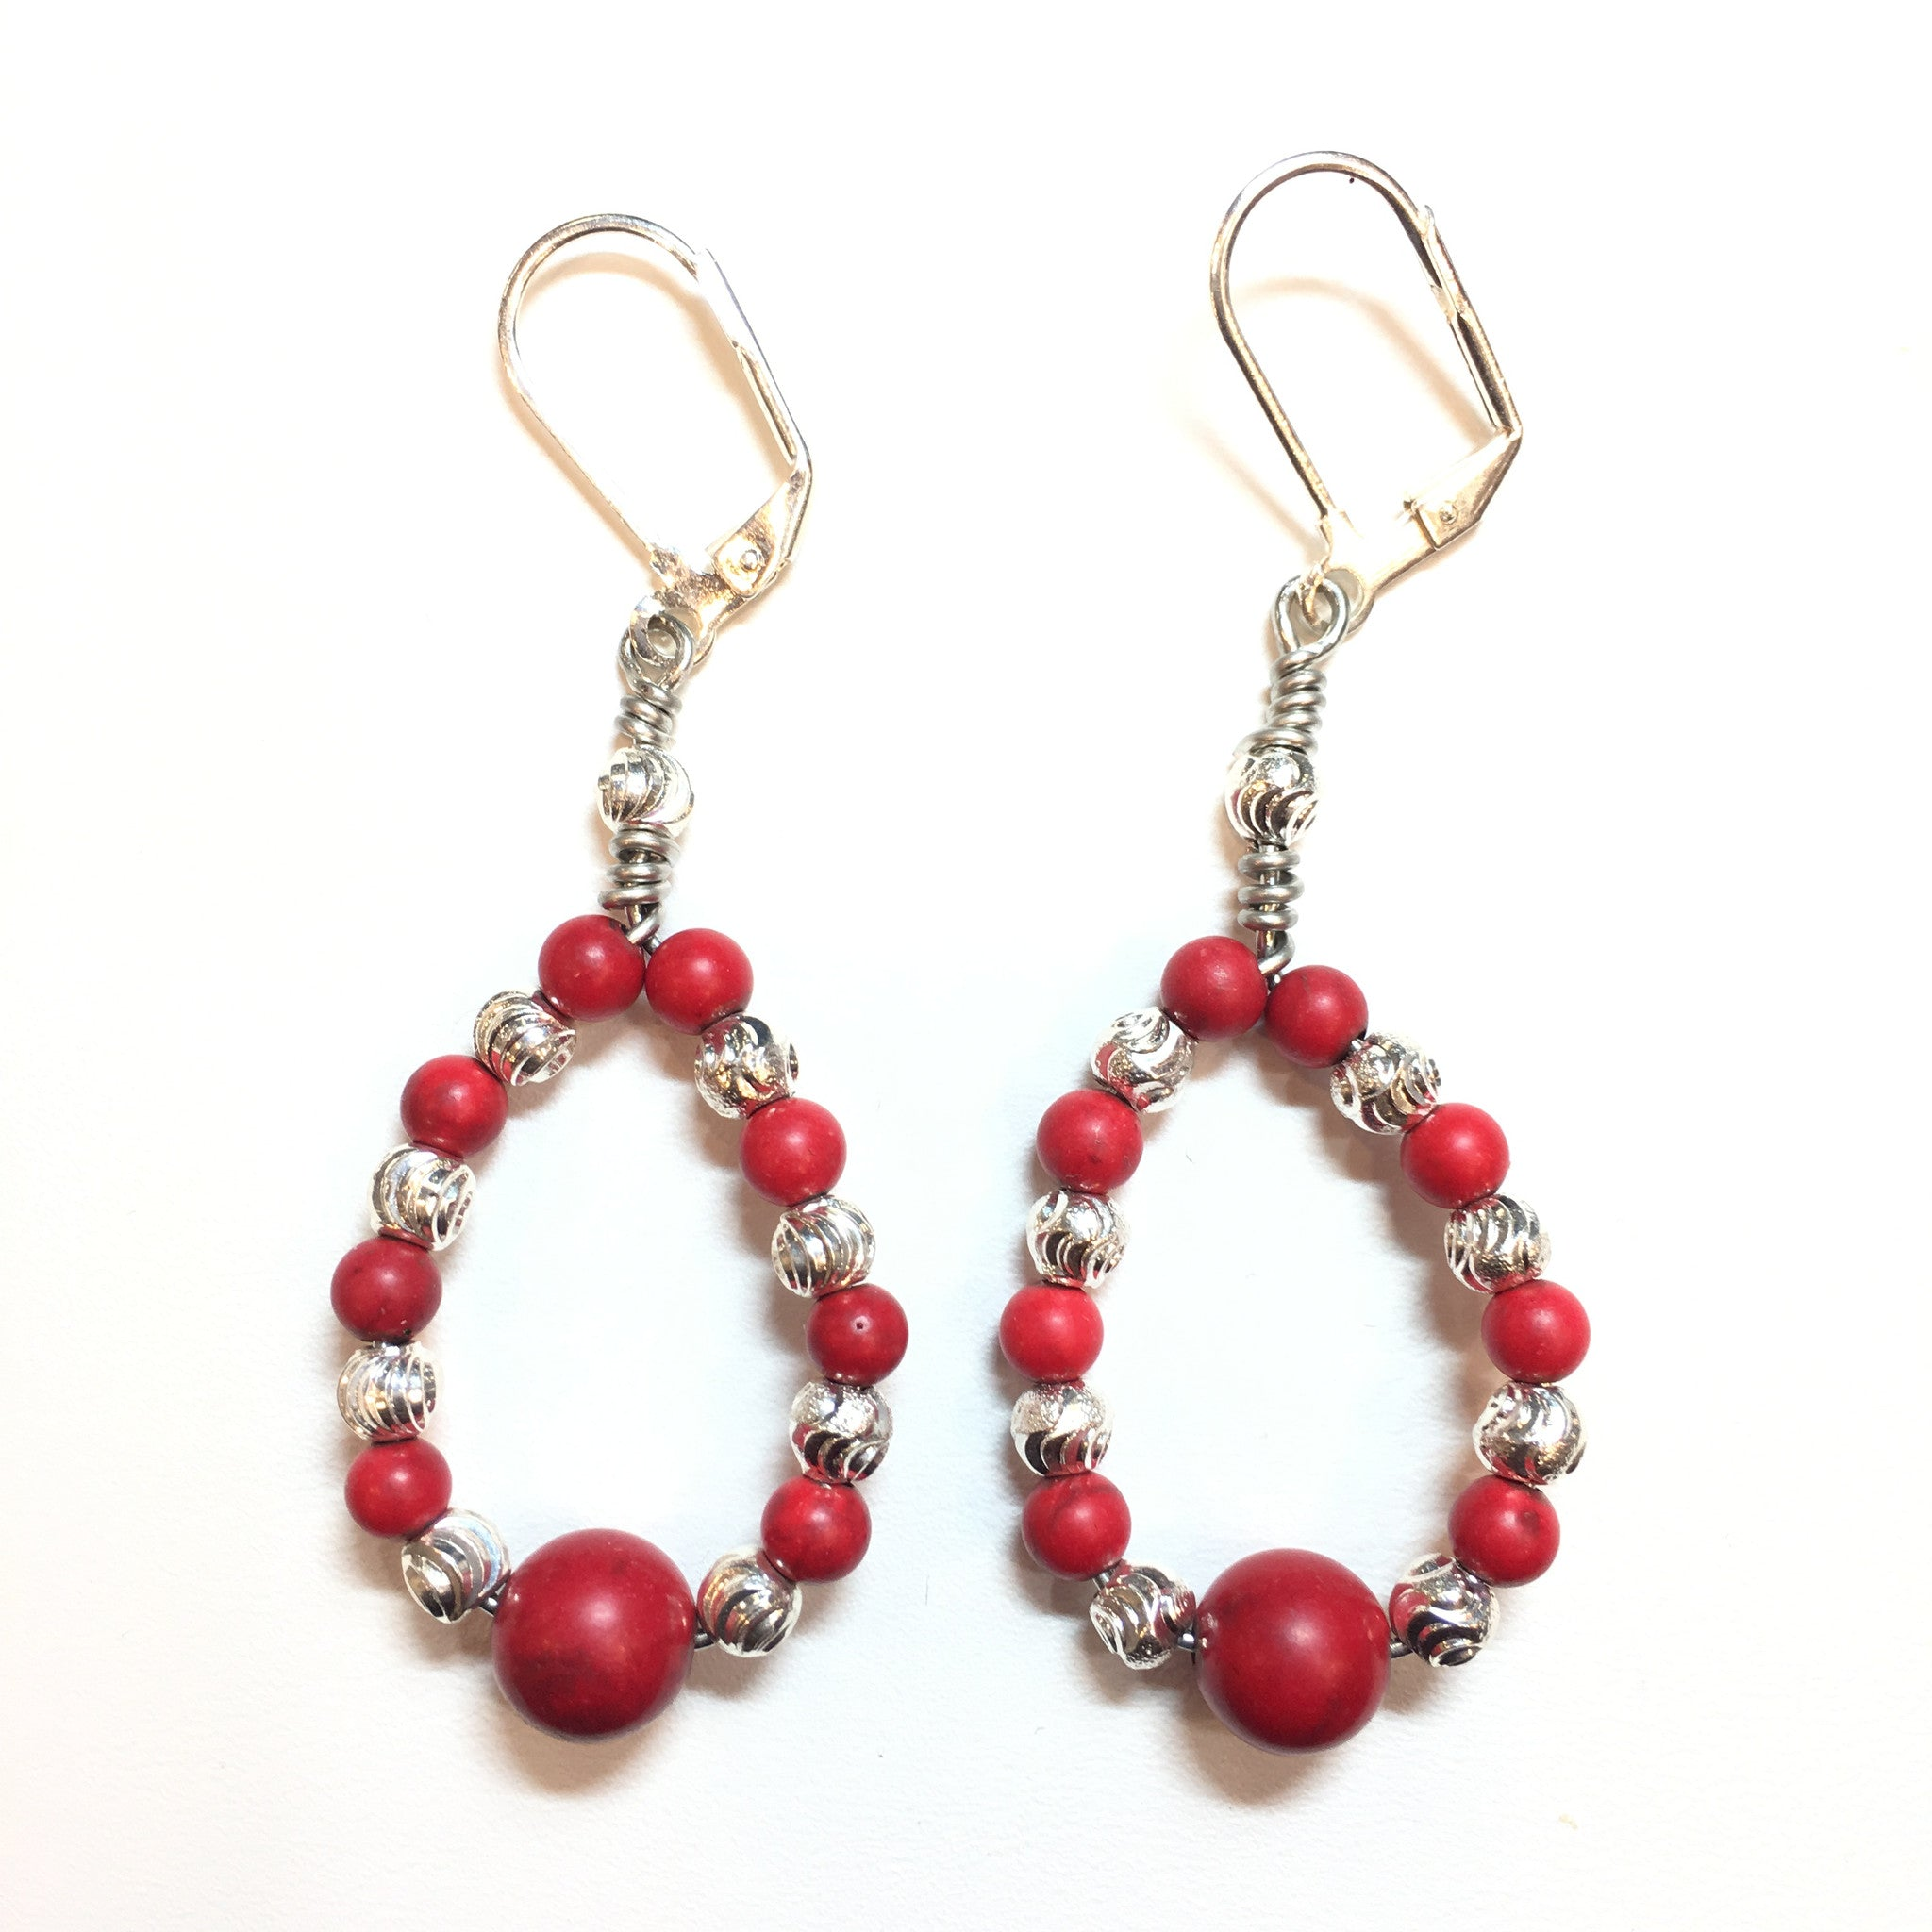 Red Coral and Silver Teardrop Earring - Real Chic Boutique  - 3